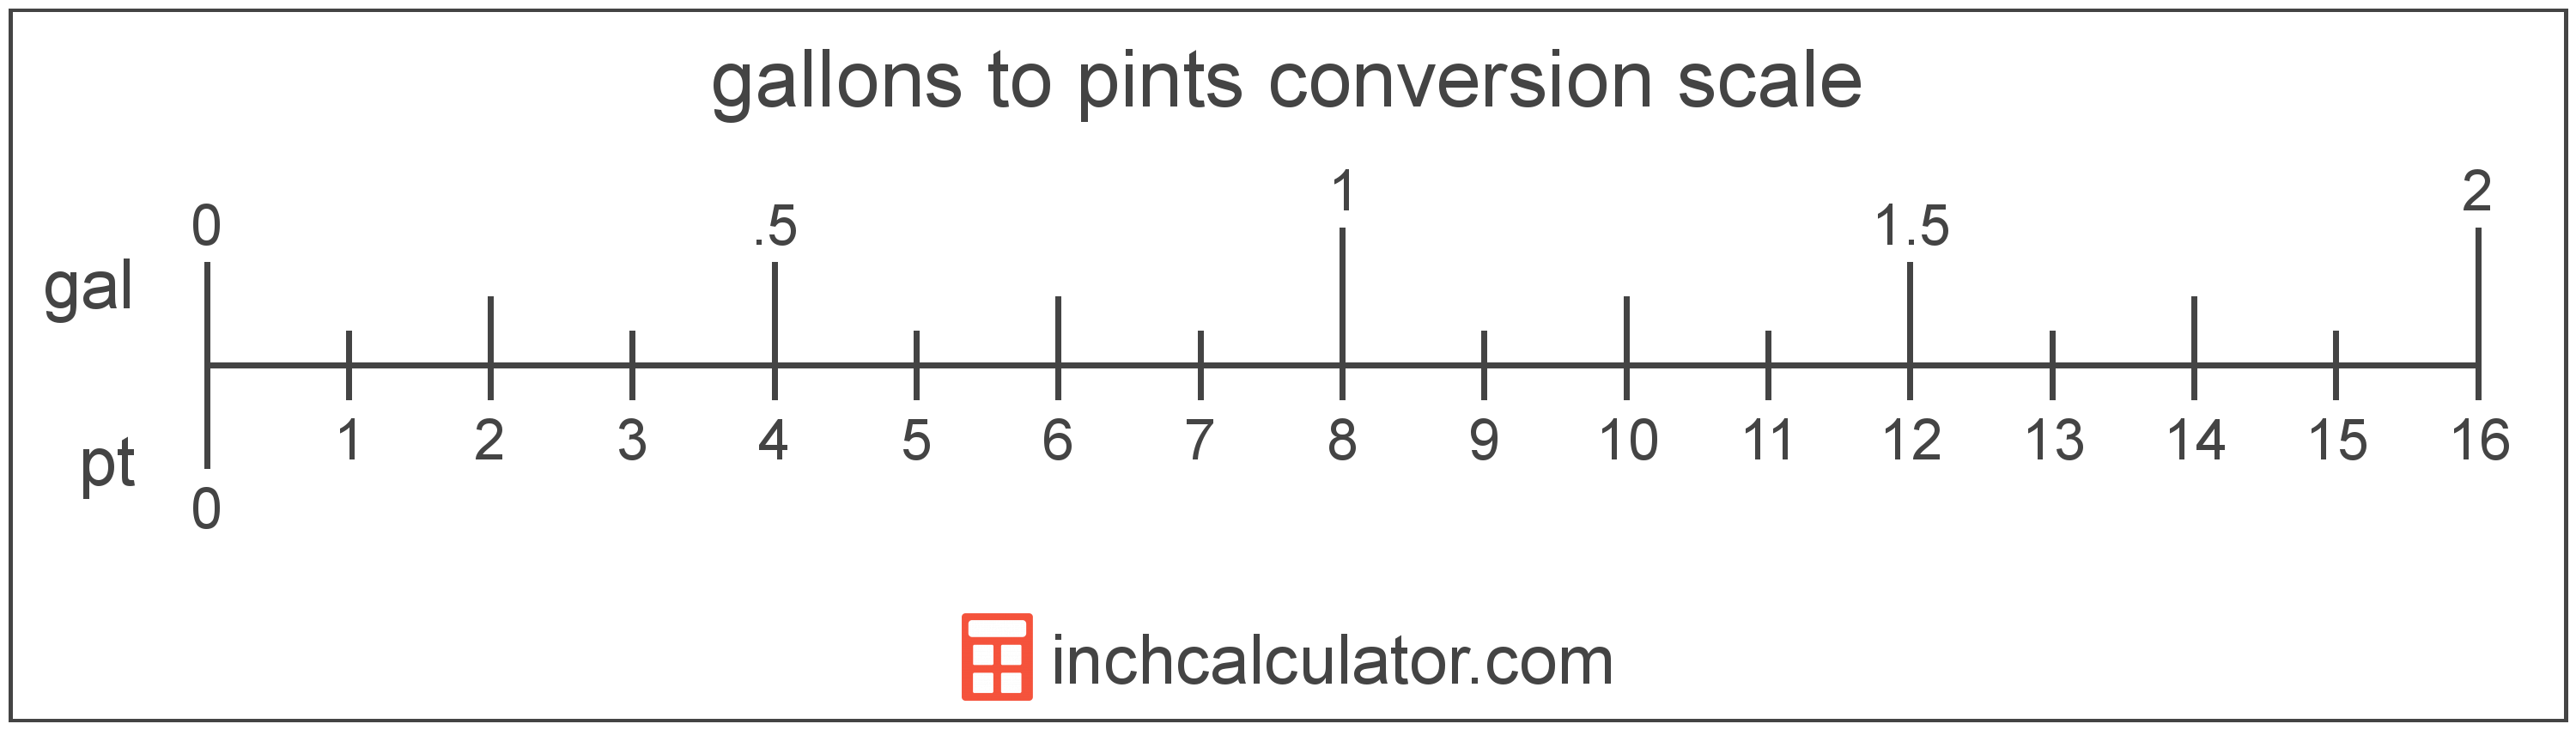 conversion scale showing pints and equivalent gallons volume values